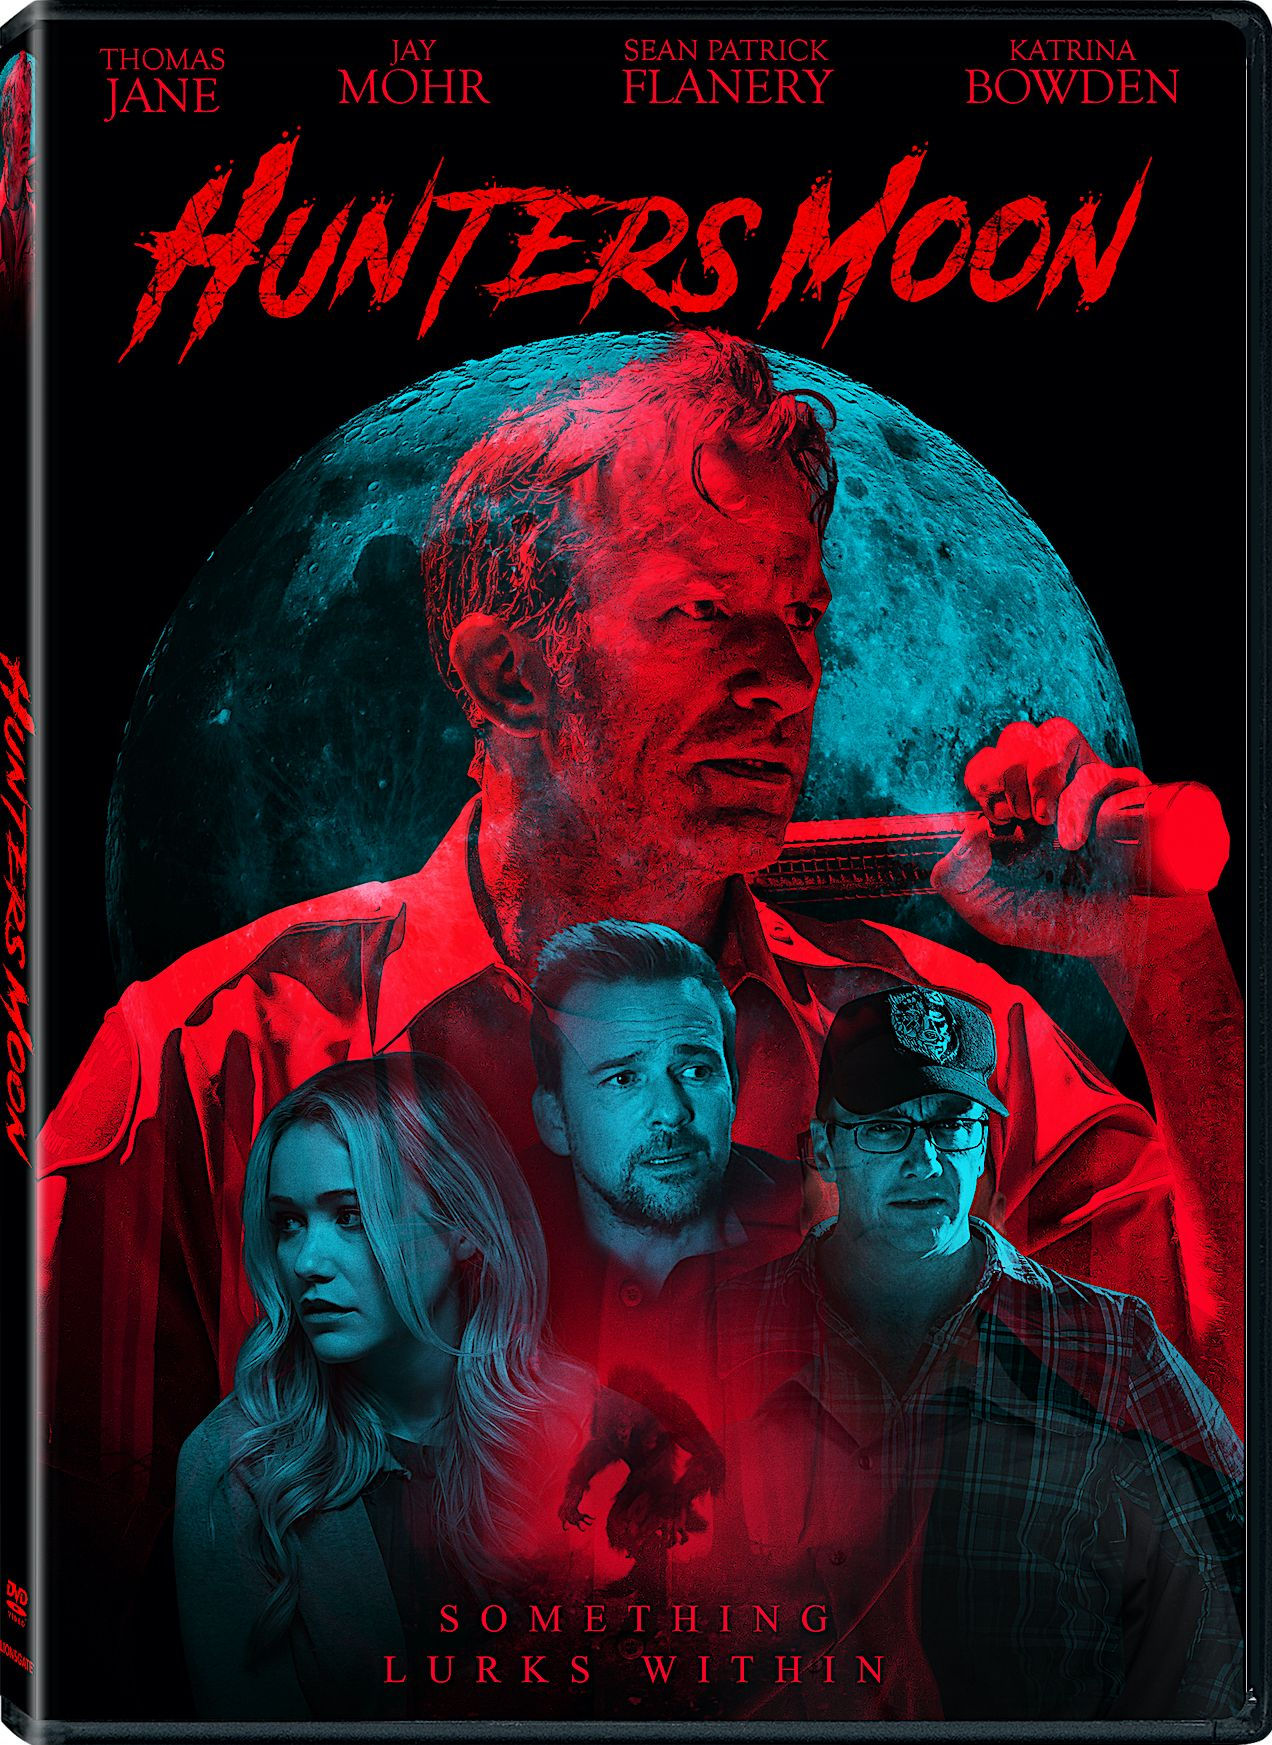 HUNTERS MOON DVD (LIONSGATE) in 2020 Thomas jane